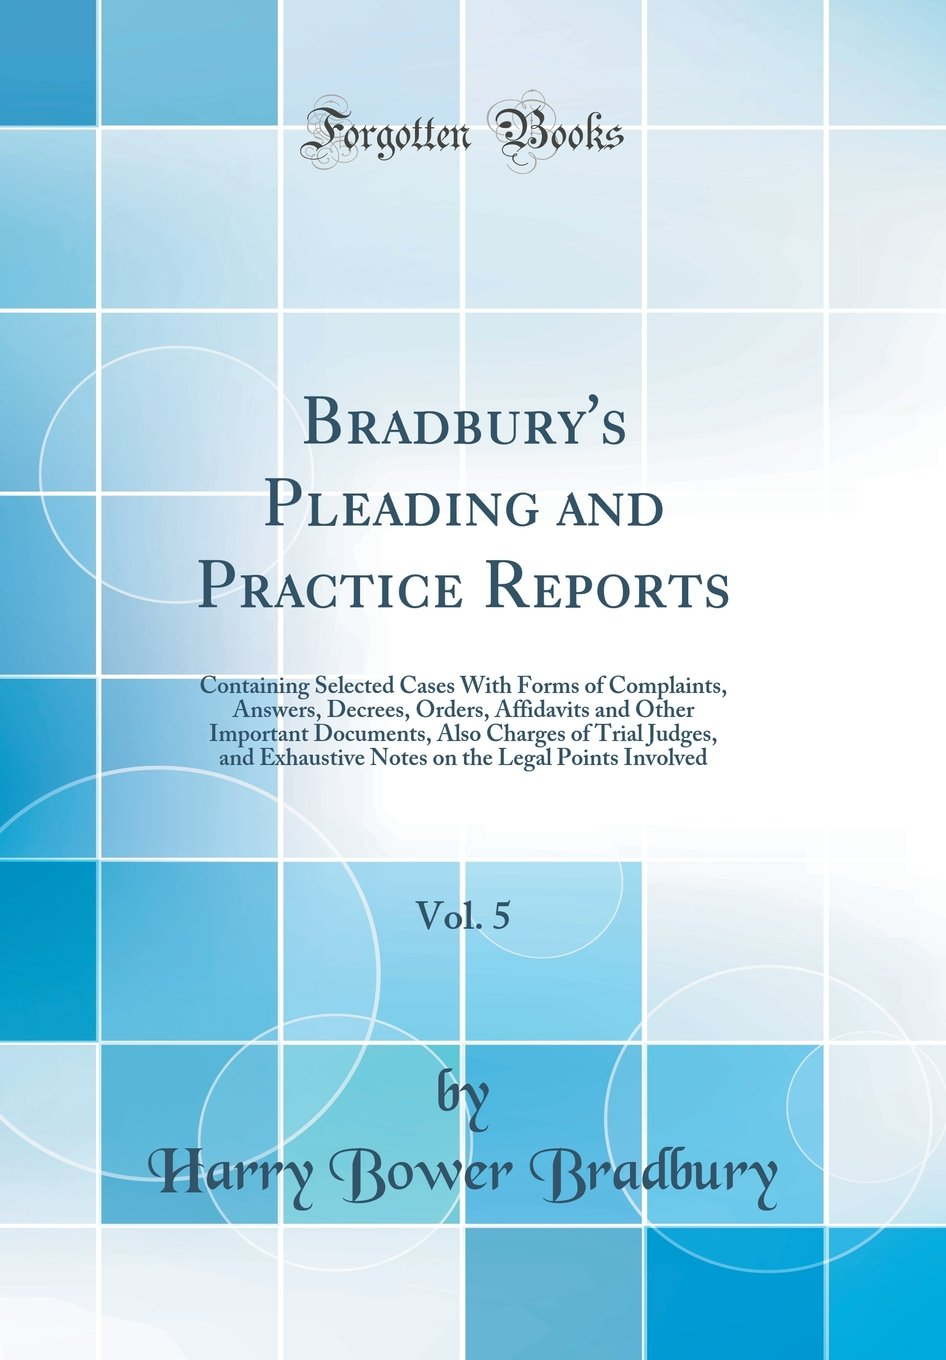 Bradbury's Pleading and Practice Reports, Vol. 5: Containing Selected Cases with Forms of Complaints, Answers, Decrees, Orders, Affidavits and Other ... Exhaustive Notes on the Legal Points Involved pdf epub